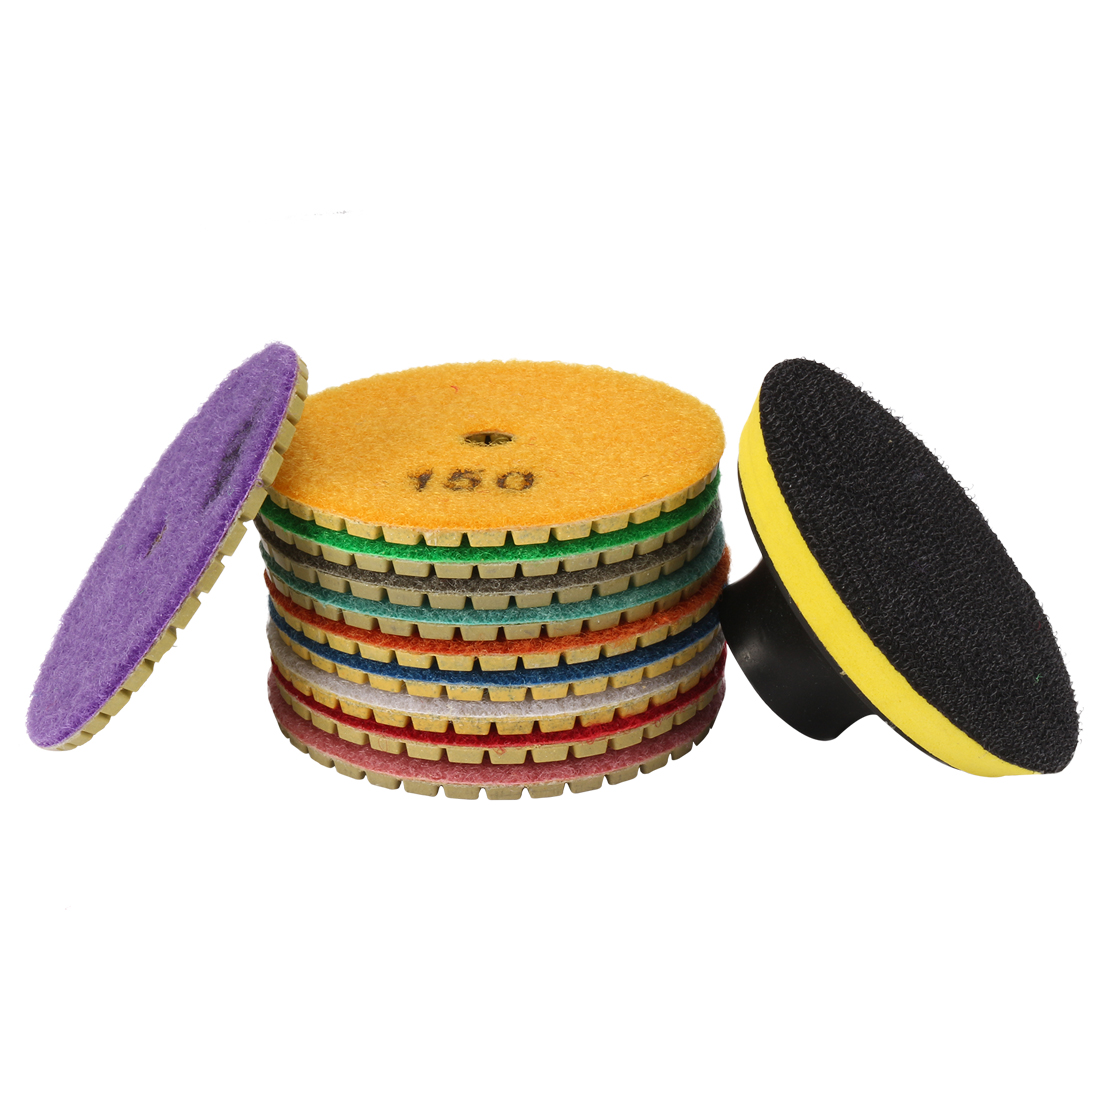 3-inch Diamond Wet Polishing Pad Disc 10 in 1 for Granite Stone Concrete Marble